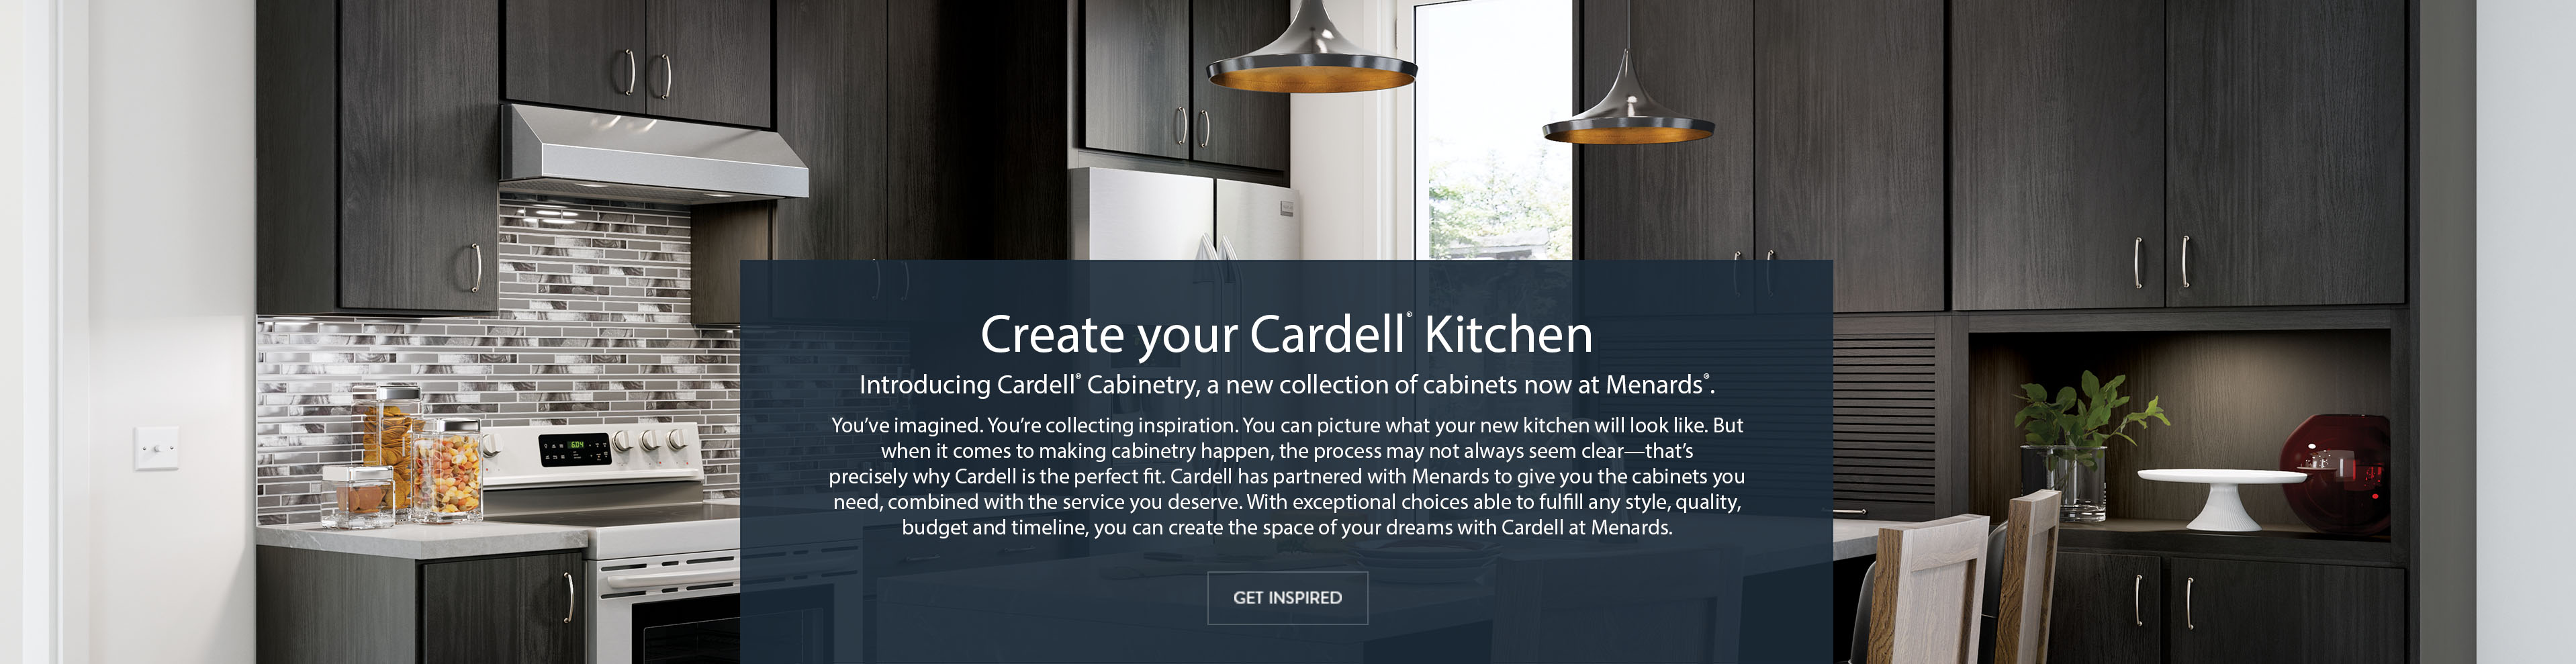 Kitchen Cabinets Birmingham Al Cardell Cabinetry Kitchen And Bathroom Cabinetry